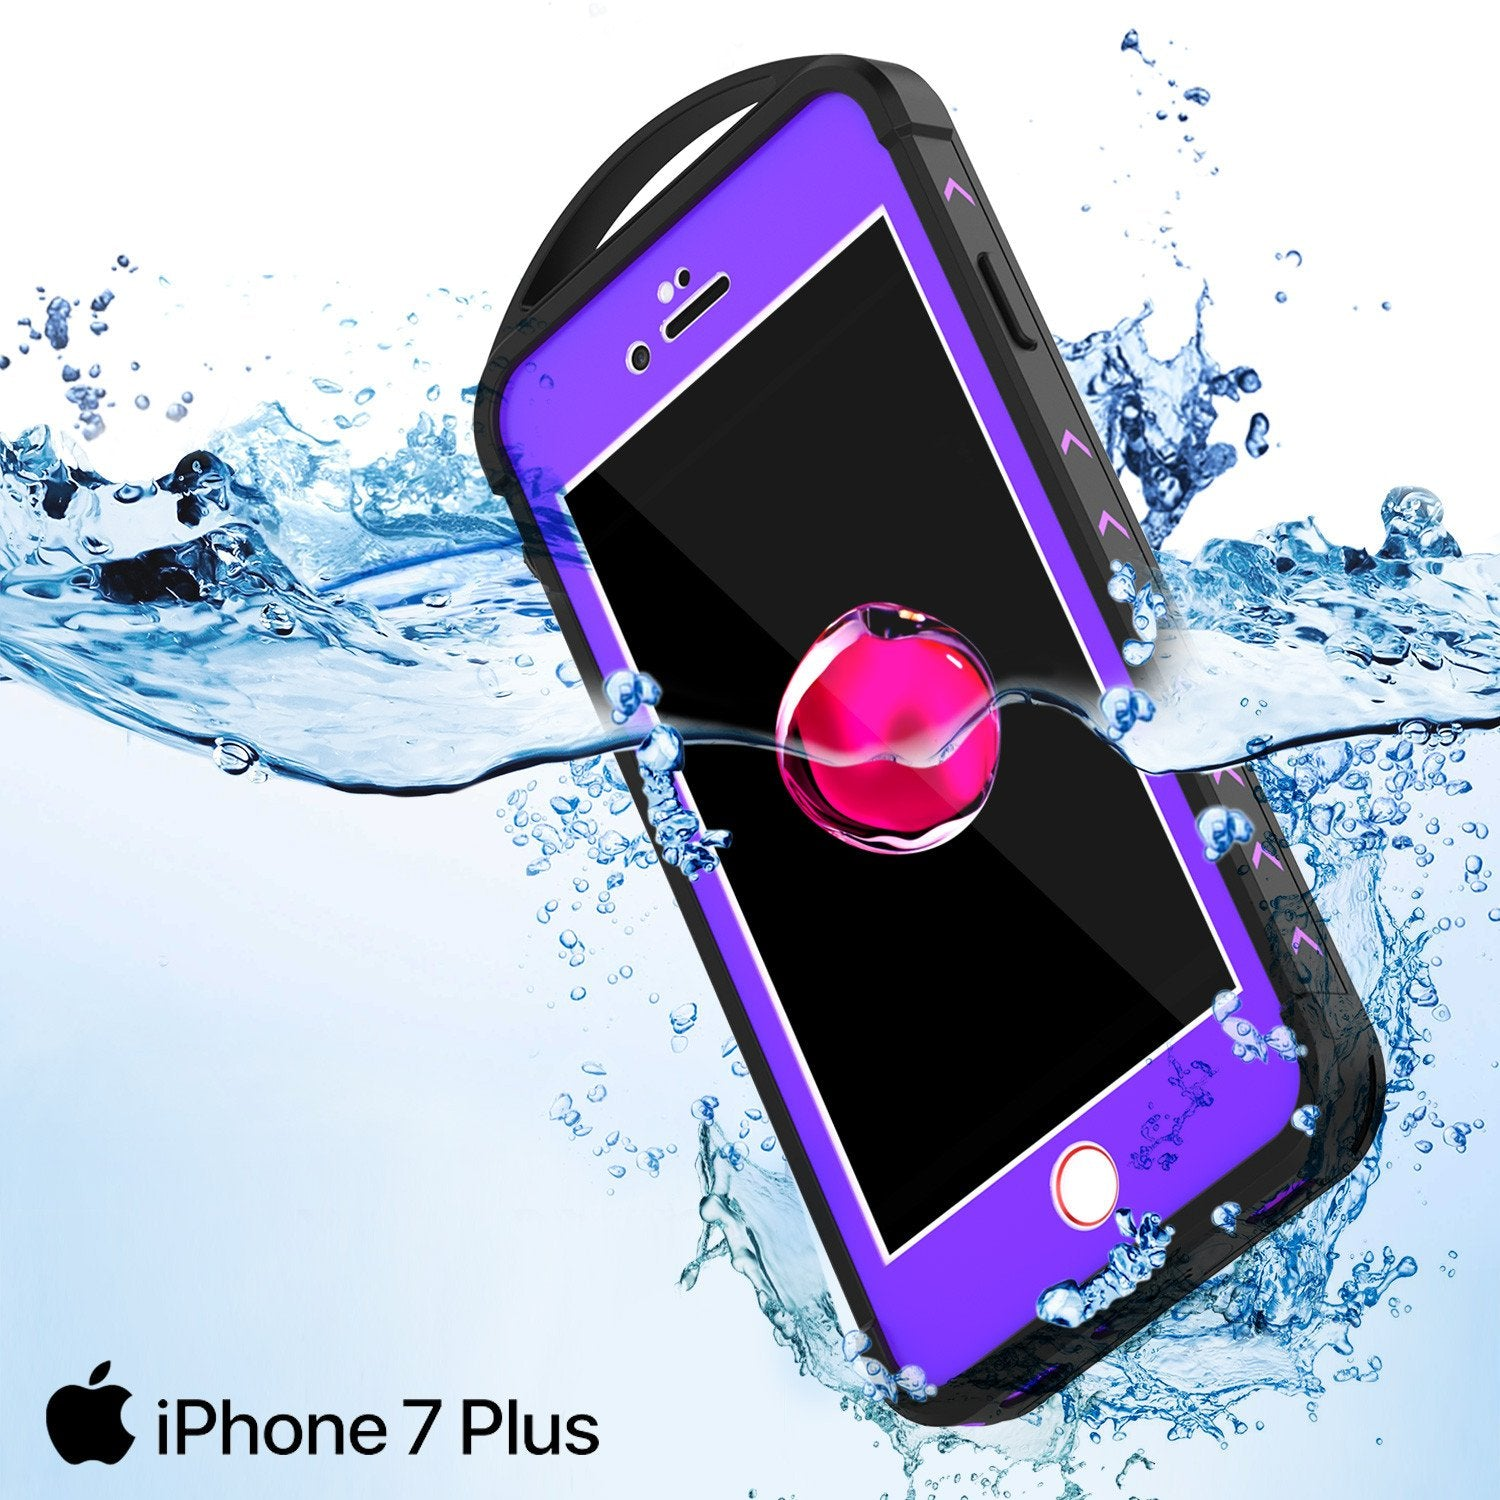 iPhone 7+ Plus Waterproof Case, Punkcase ALPINE Series, Purple | Heavy Duty Armor Cover